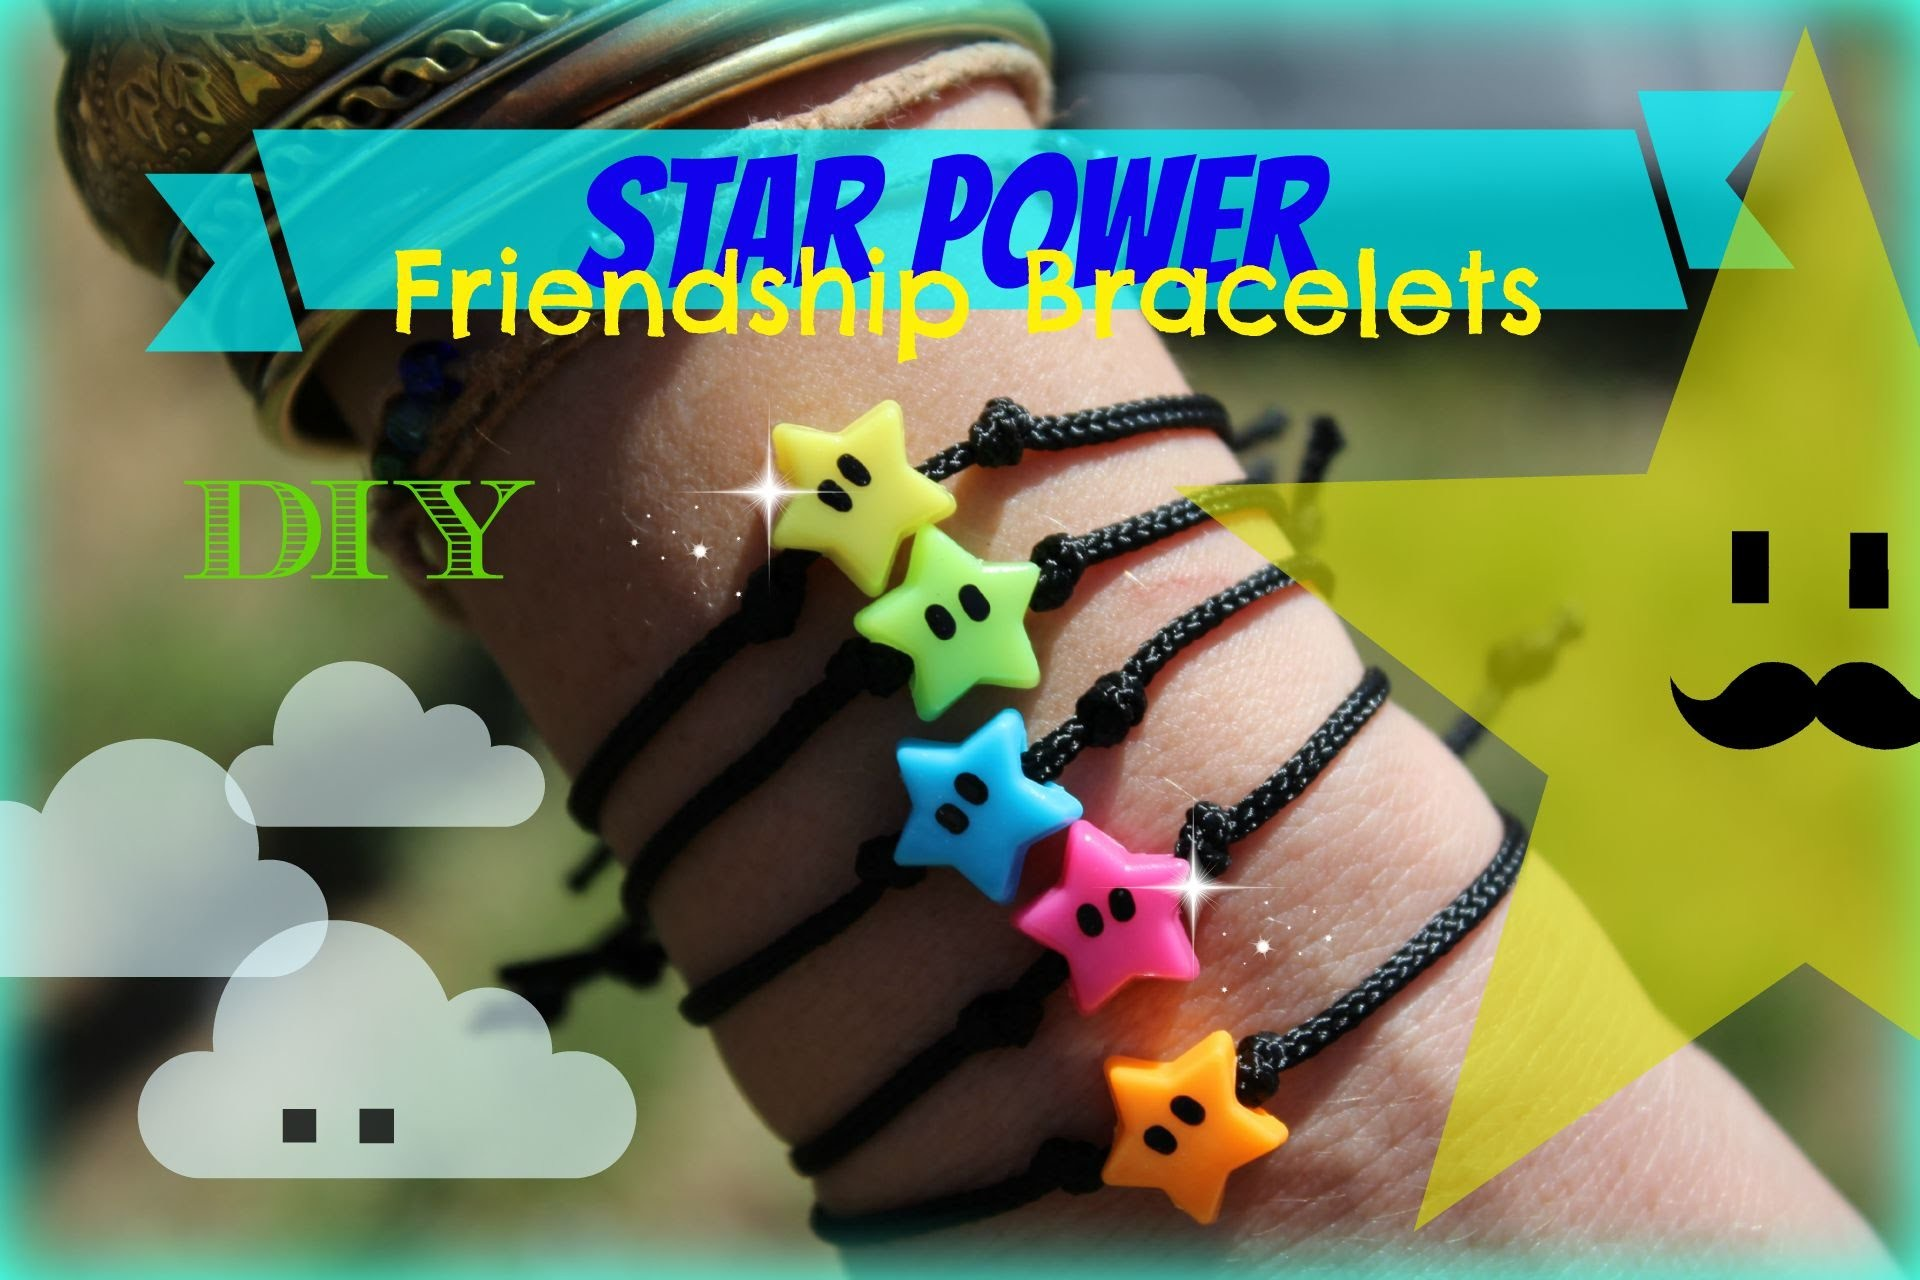 Star Power Friendship Bracelets Mario Bros Inspired DIY Gifts or Party Favors